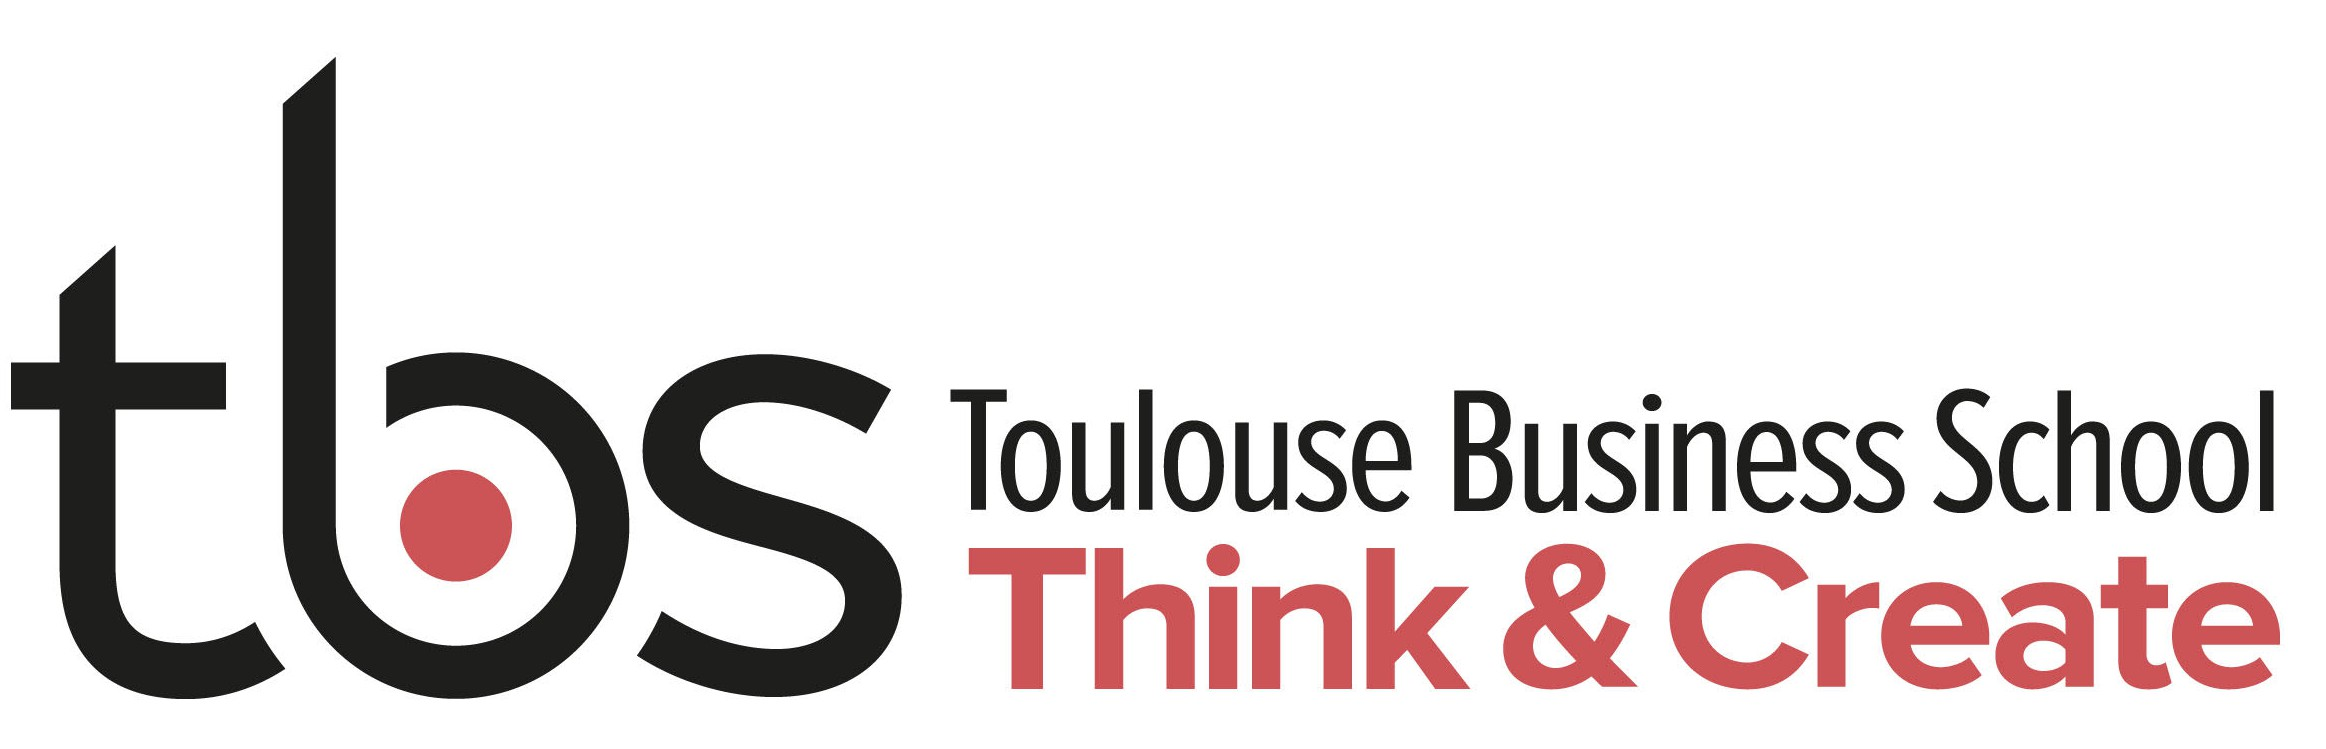 Toulouse-Business-School-e1540906883789